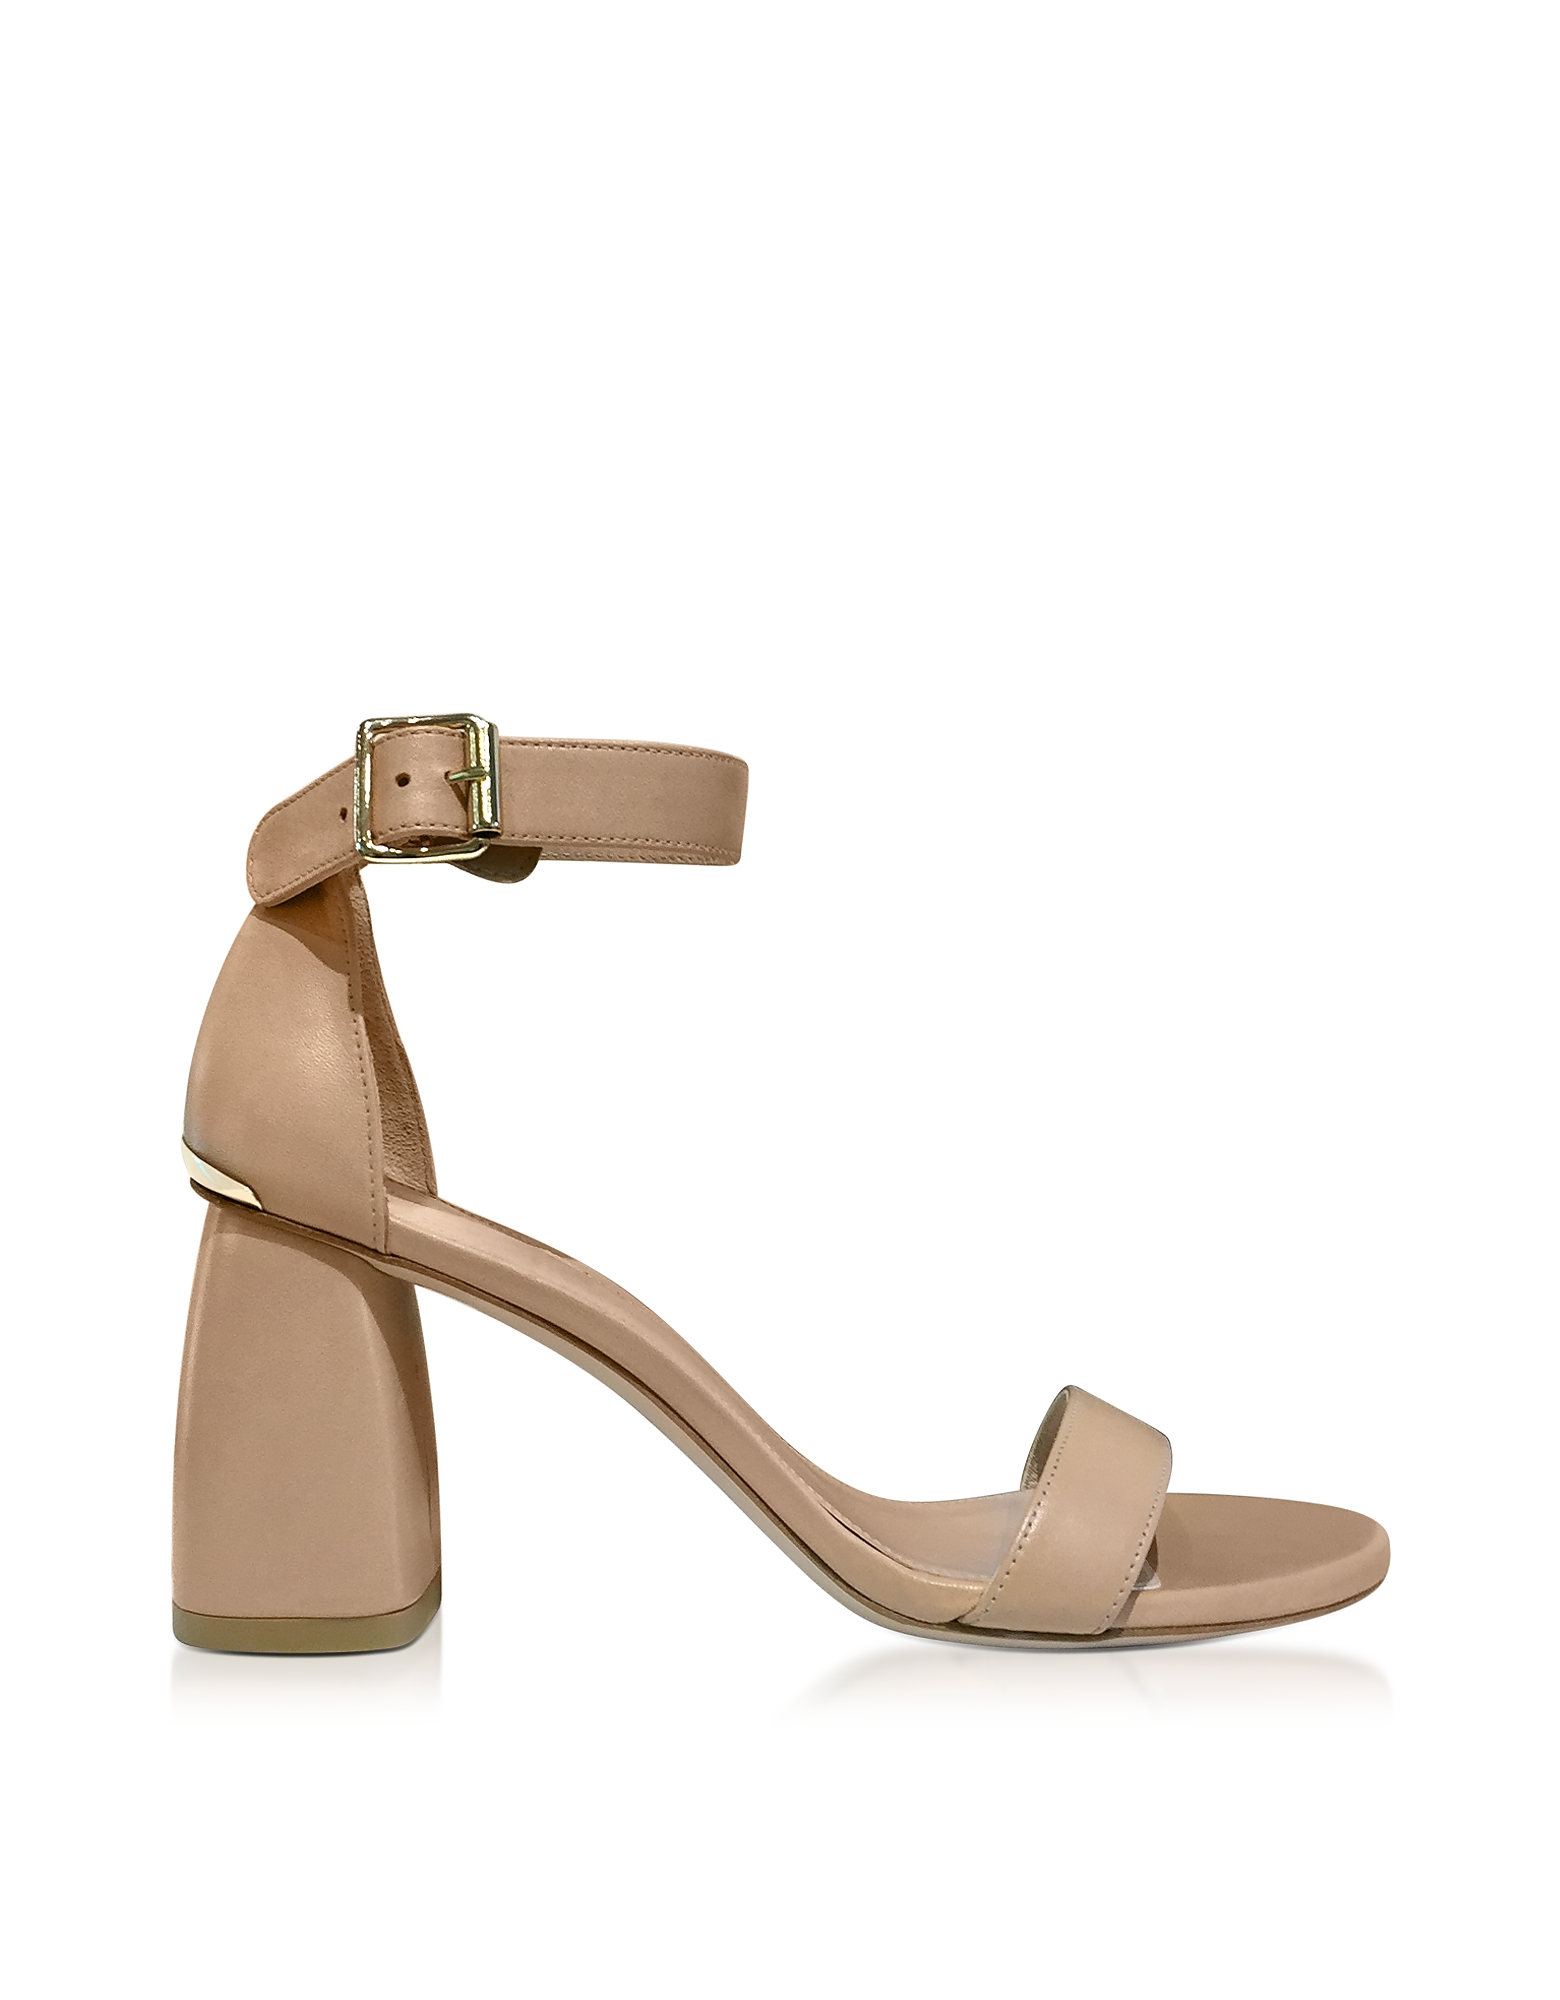 Stuart Weitzman Shoes, Partlynude Nude Nappa Leather Heel Sandals